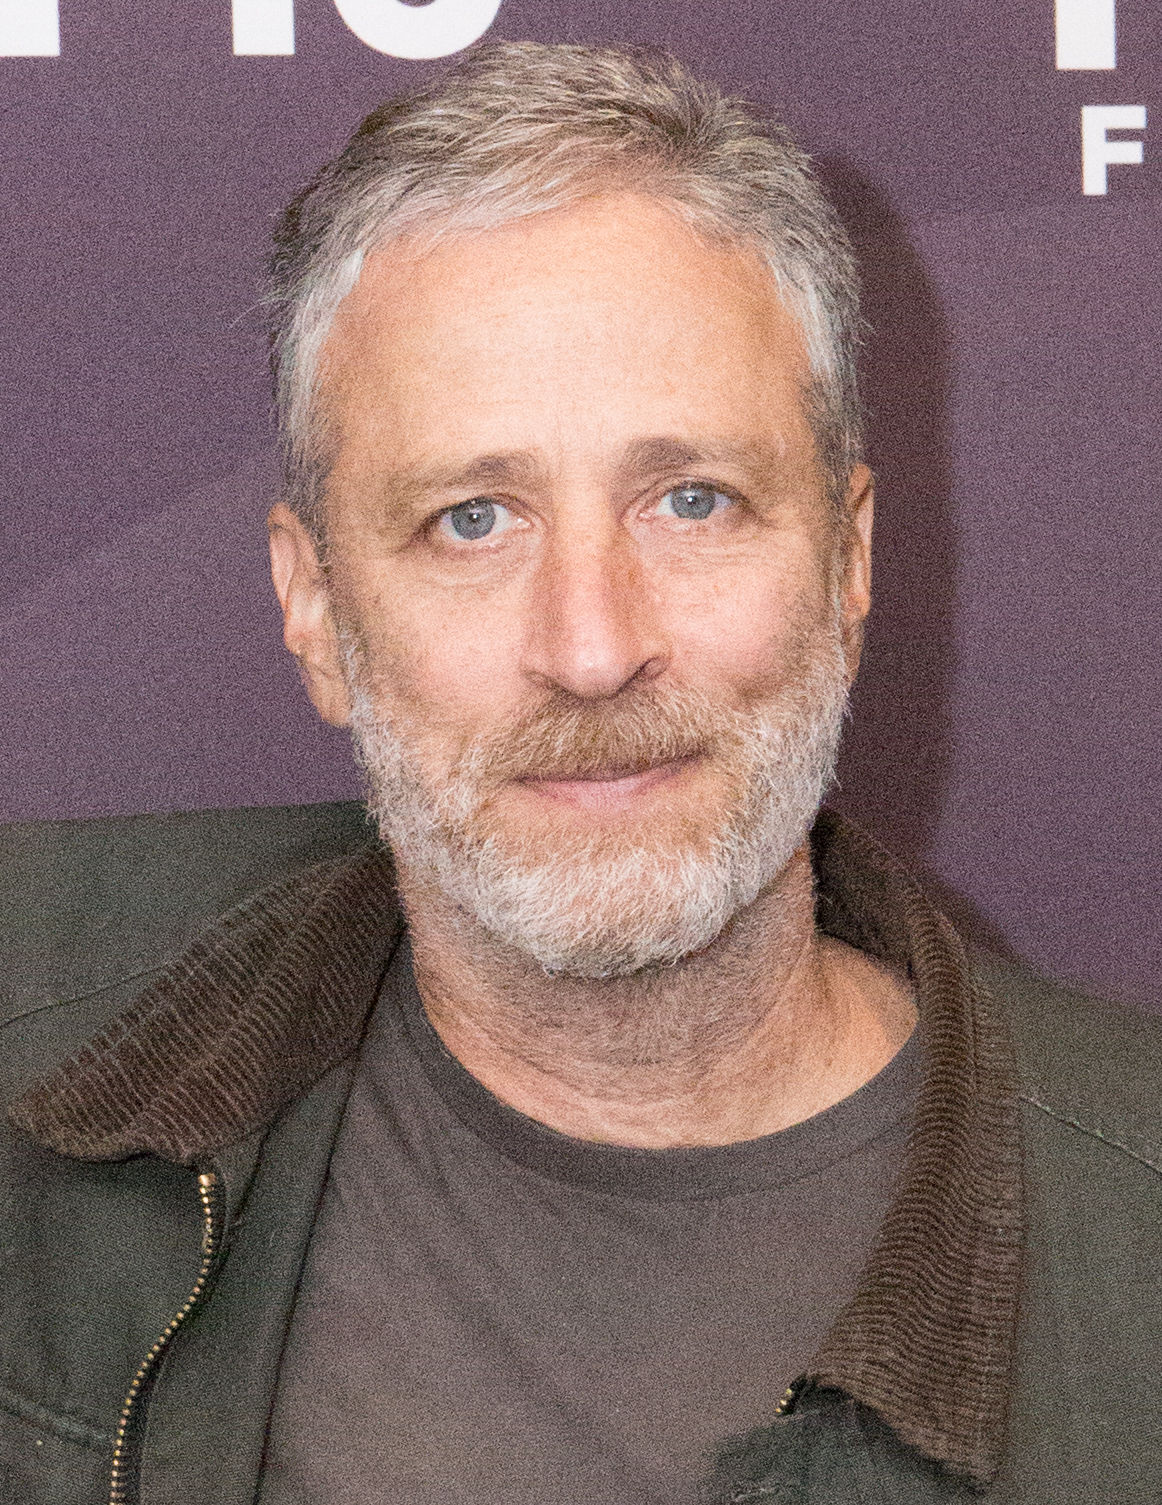 Photo of Jon Stewart: American political satirist, writer, television host, actor, media critic and stand-up comedian